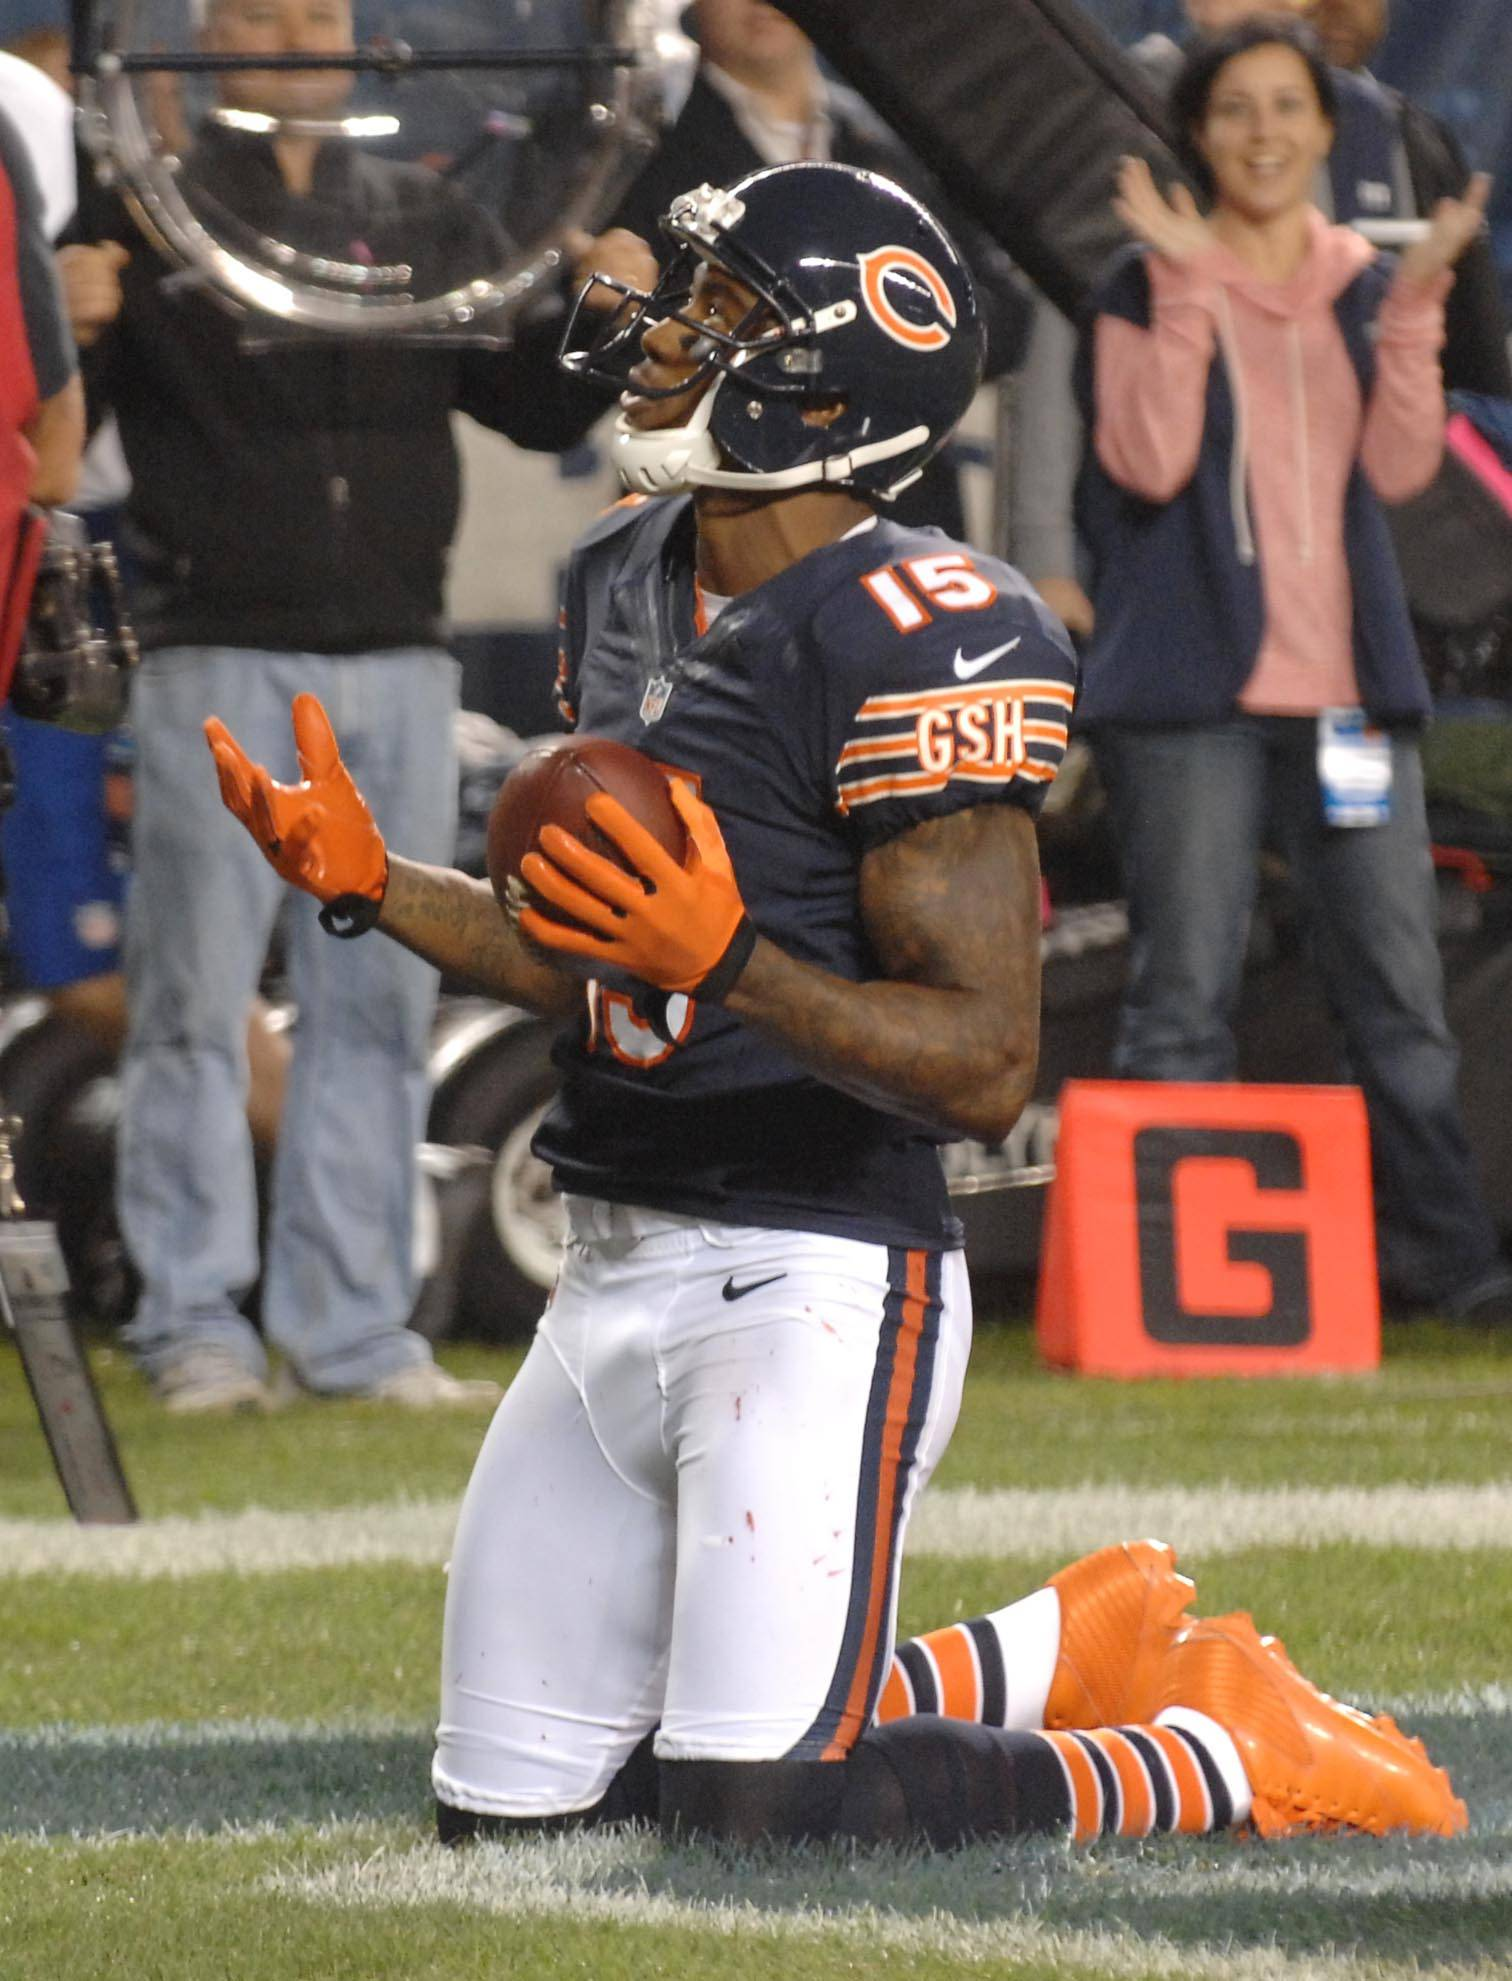 If Bears wide receiver Brandon Marshall continues playing at the same level he has over the last two seasons, he likely will own every Bears receiving record when his contract expires in 2017.